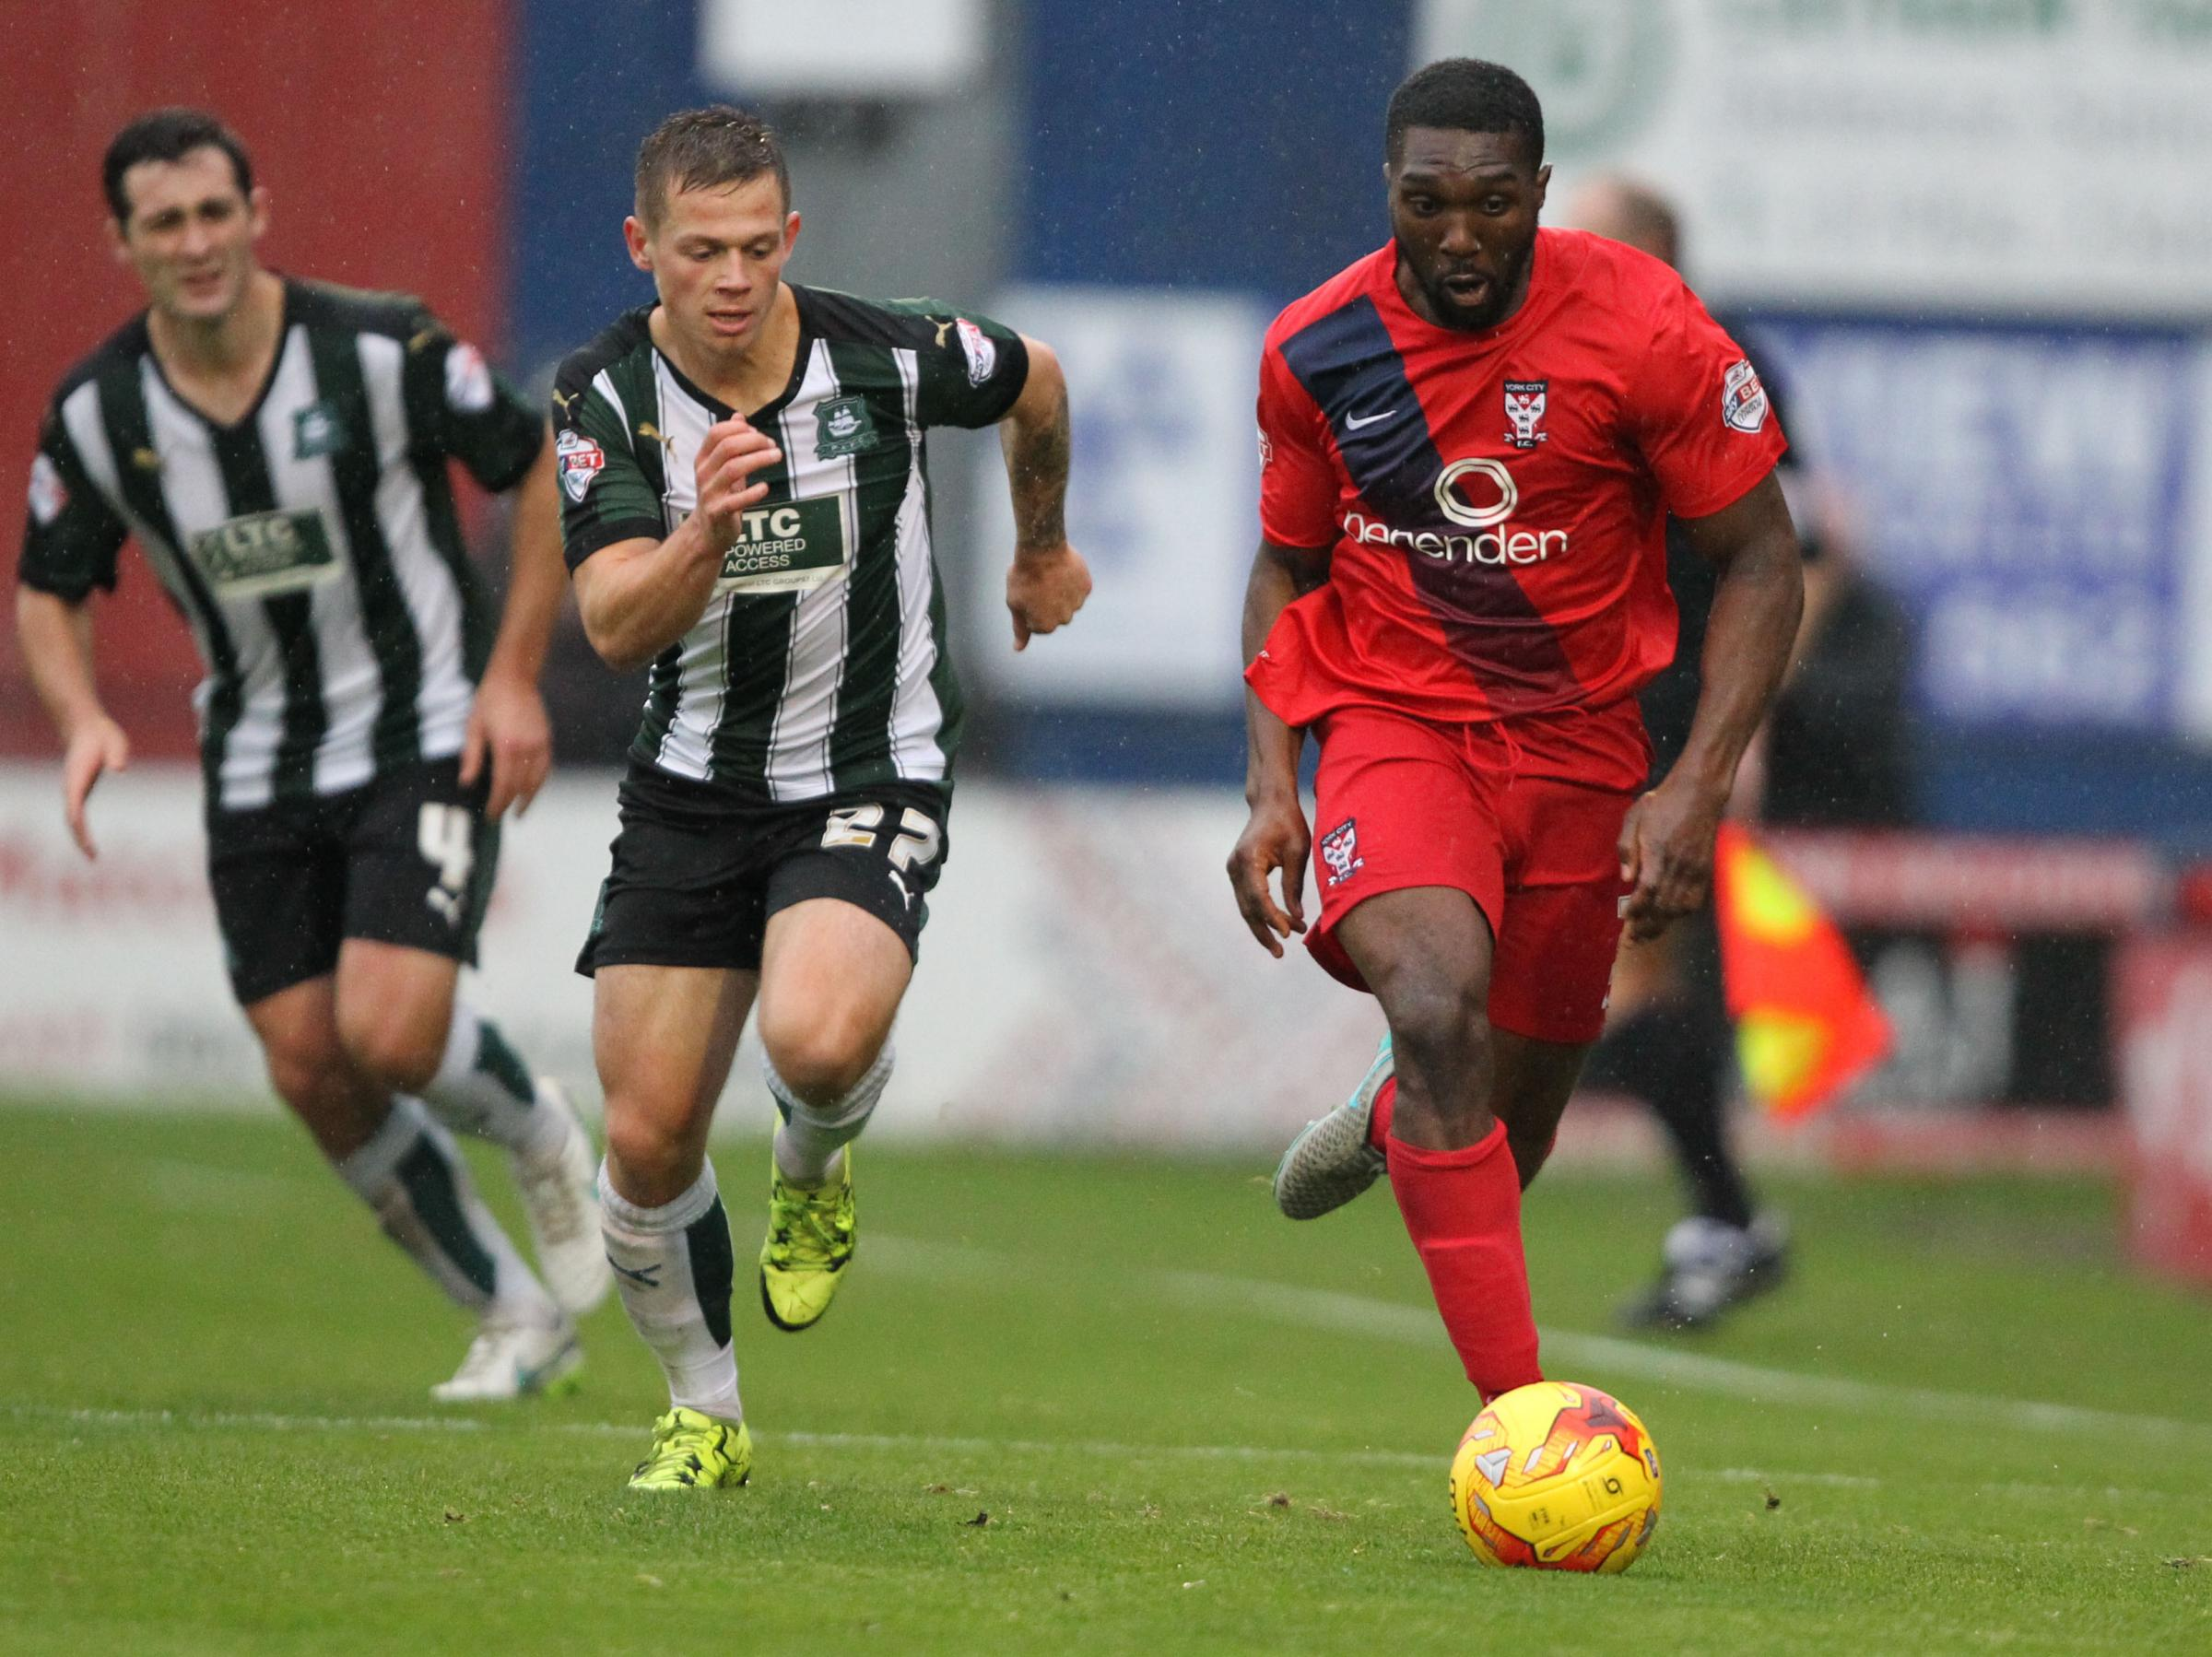 WING AND A PRAYER: Femi Ilesanmi embarks on a left-wing raid for York City during a difficult first half against Plymouth